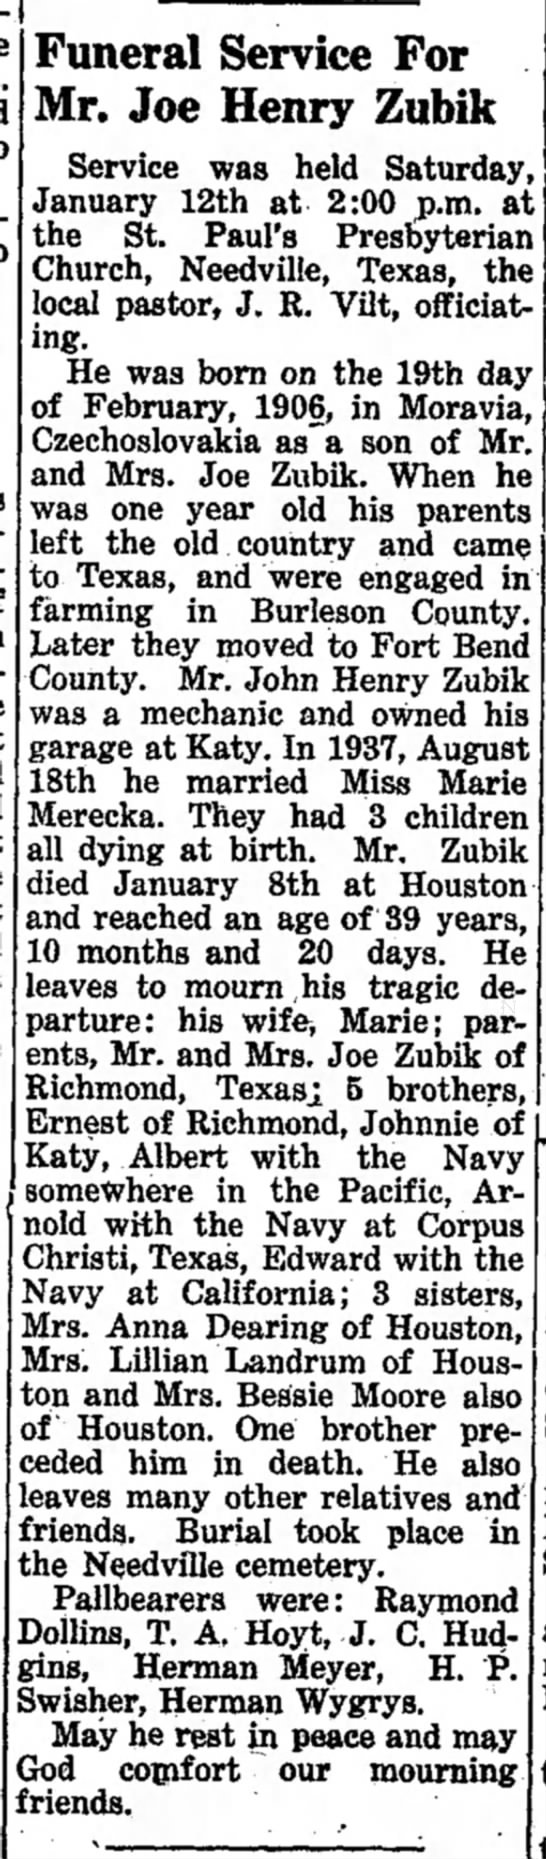 Brookshire Times 25Jan1946 Funeral Service for Mr. Joe Henry Zubik - Funeral Service For Mr. Joe Henry Zubik Service...